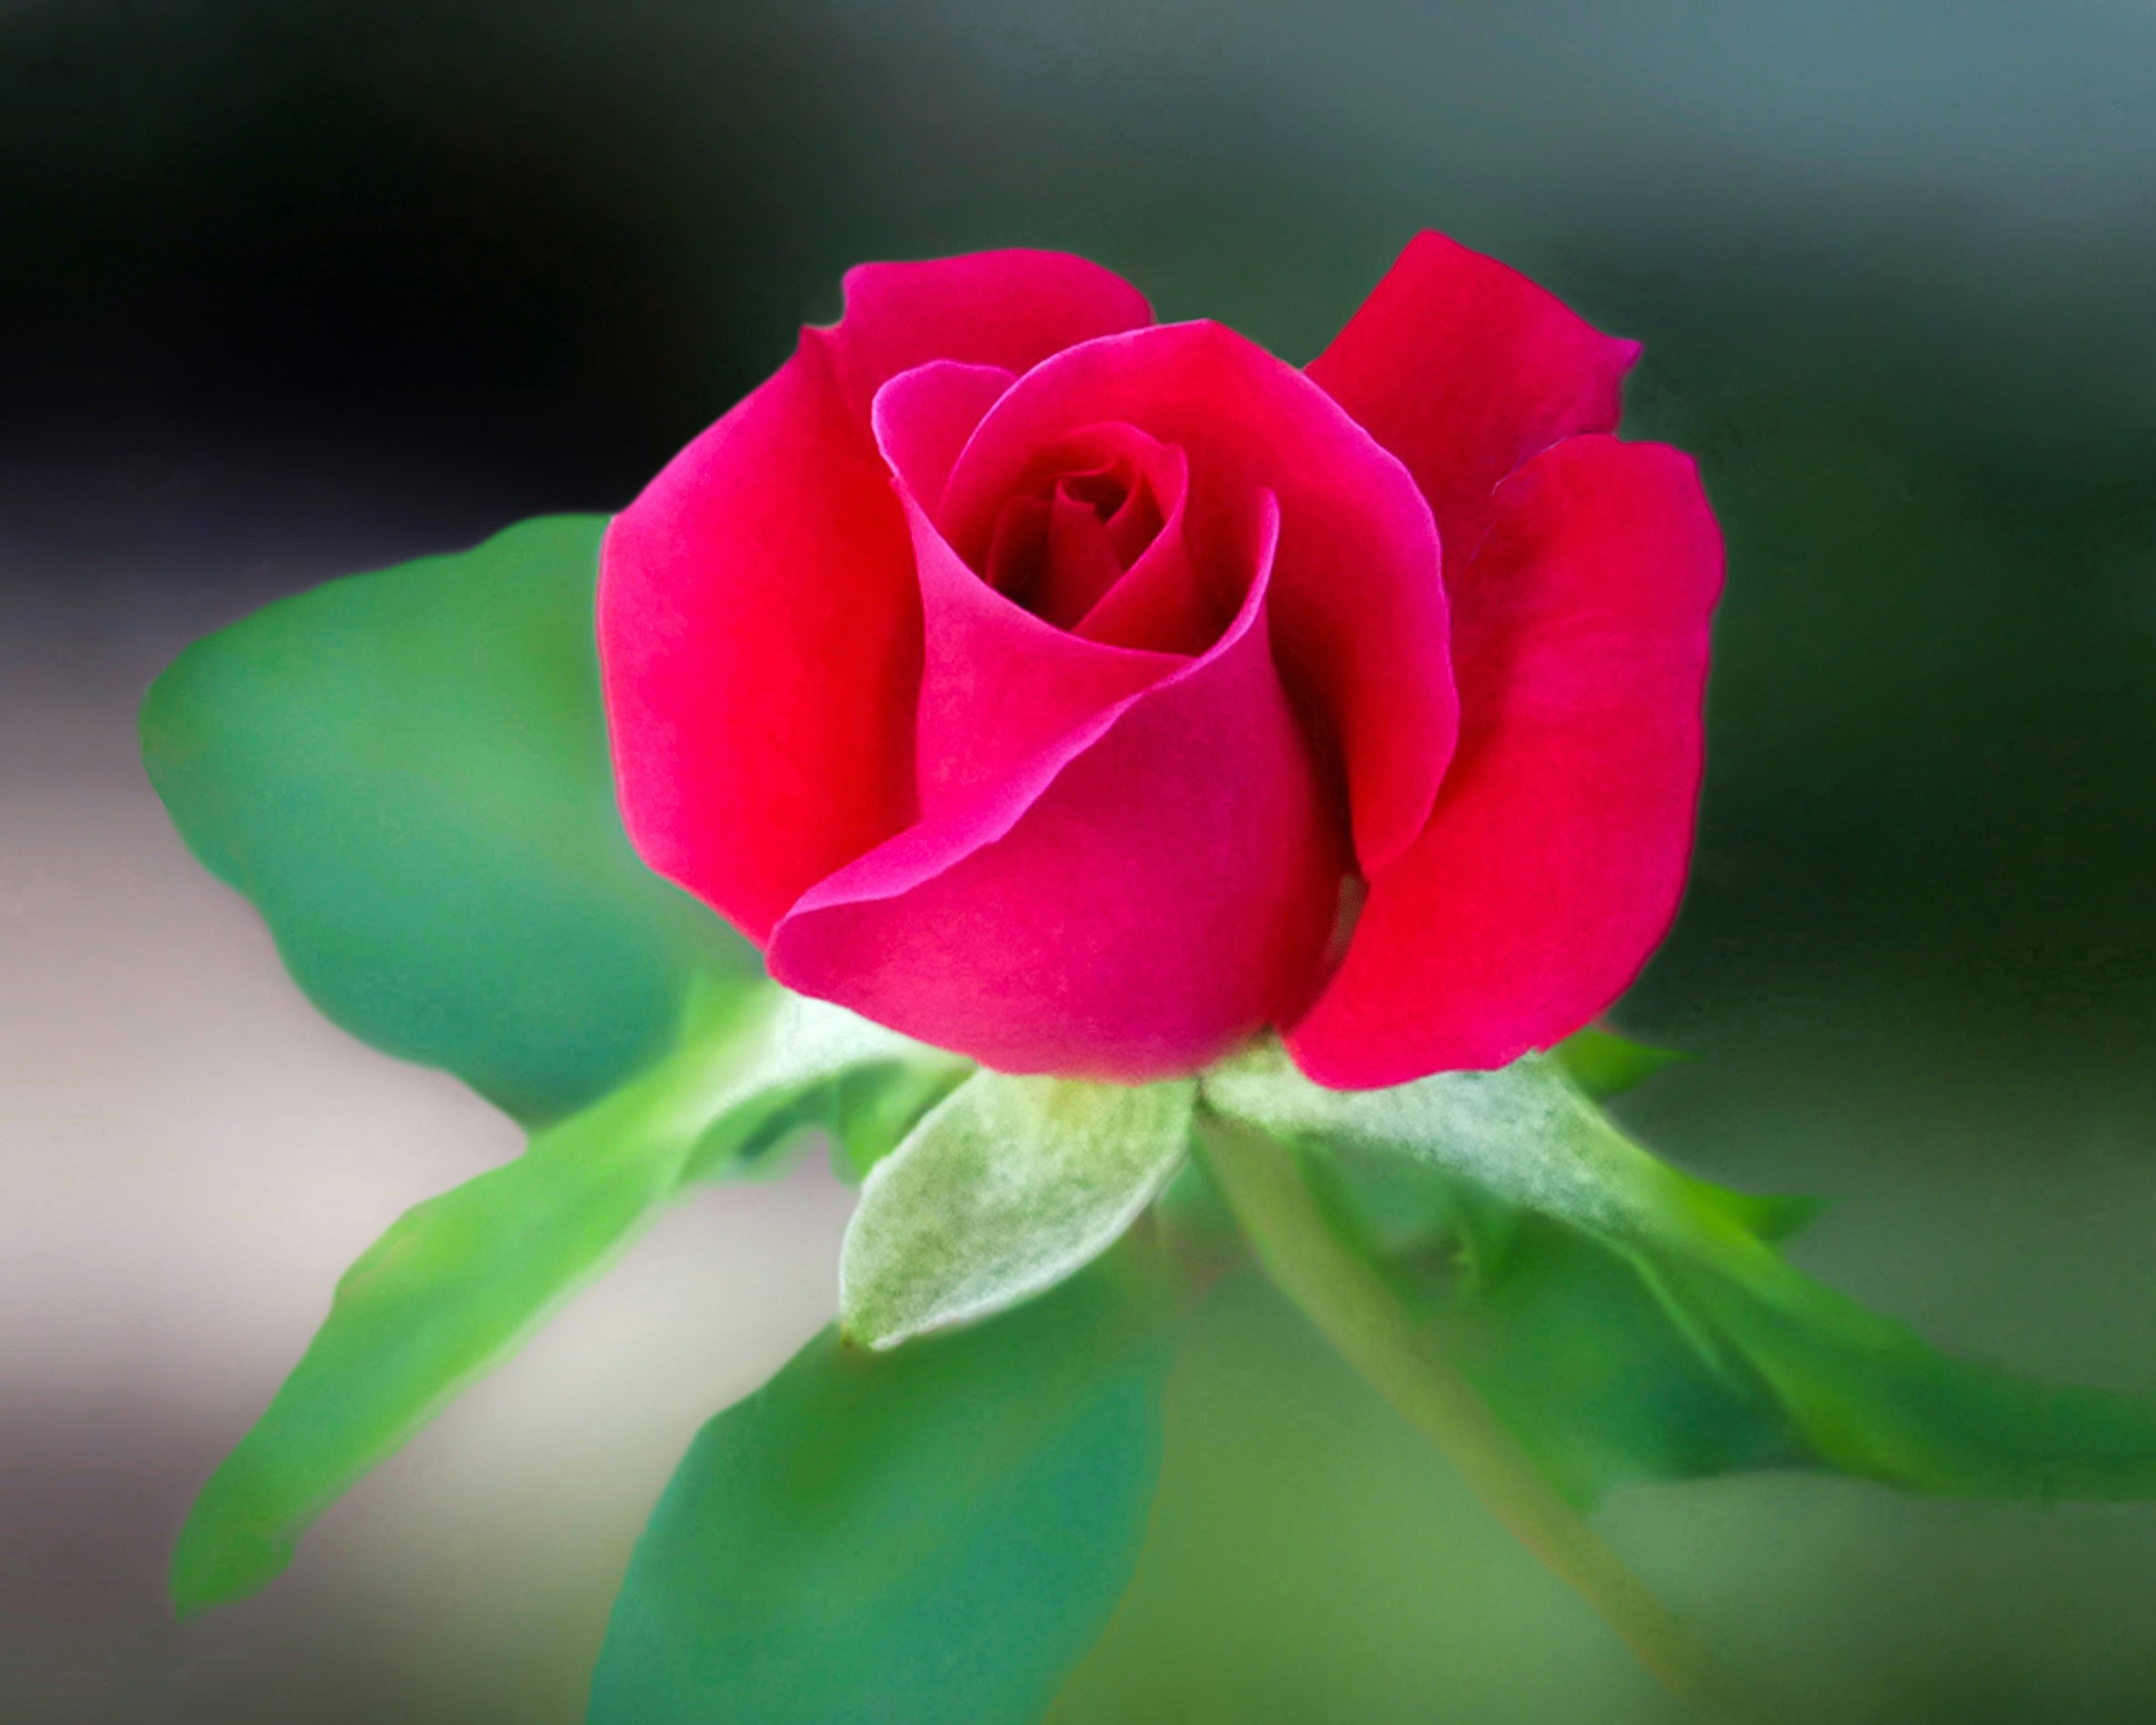 Red rose flower free stock photo - Red rose flower hd images ...